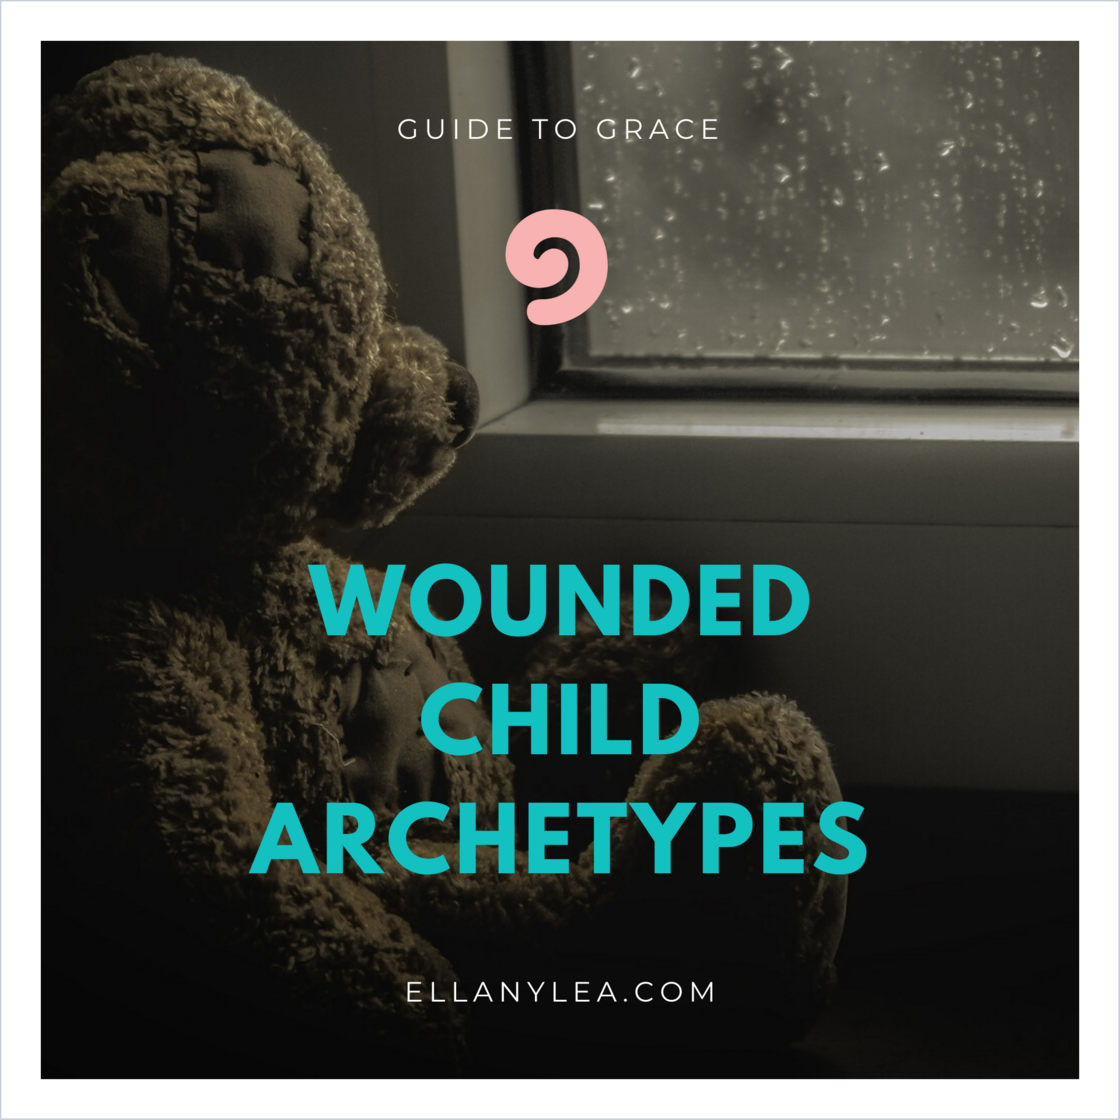 Wounded Child Archetypes - Guidebook v1.6 - Cover